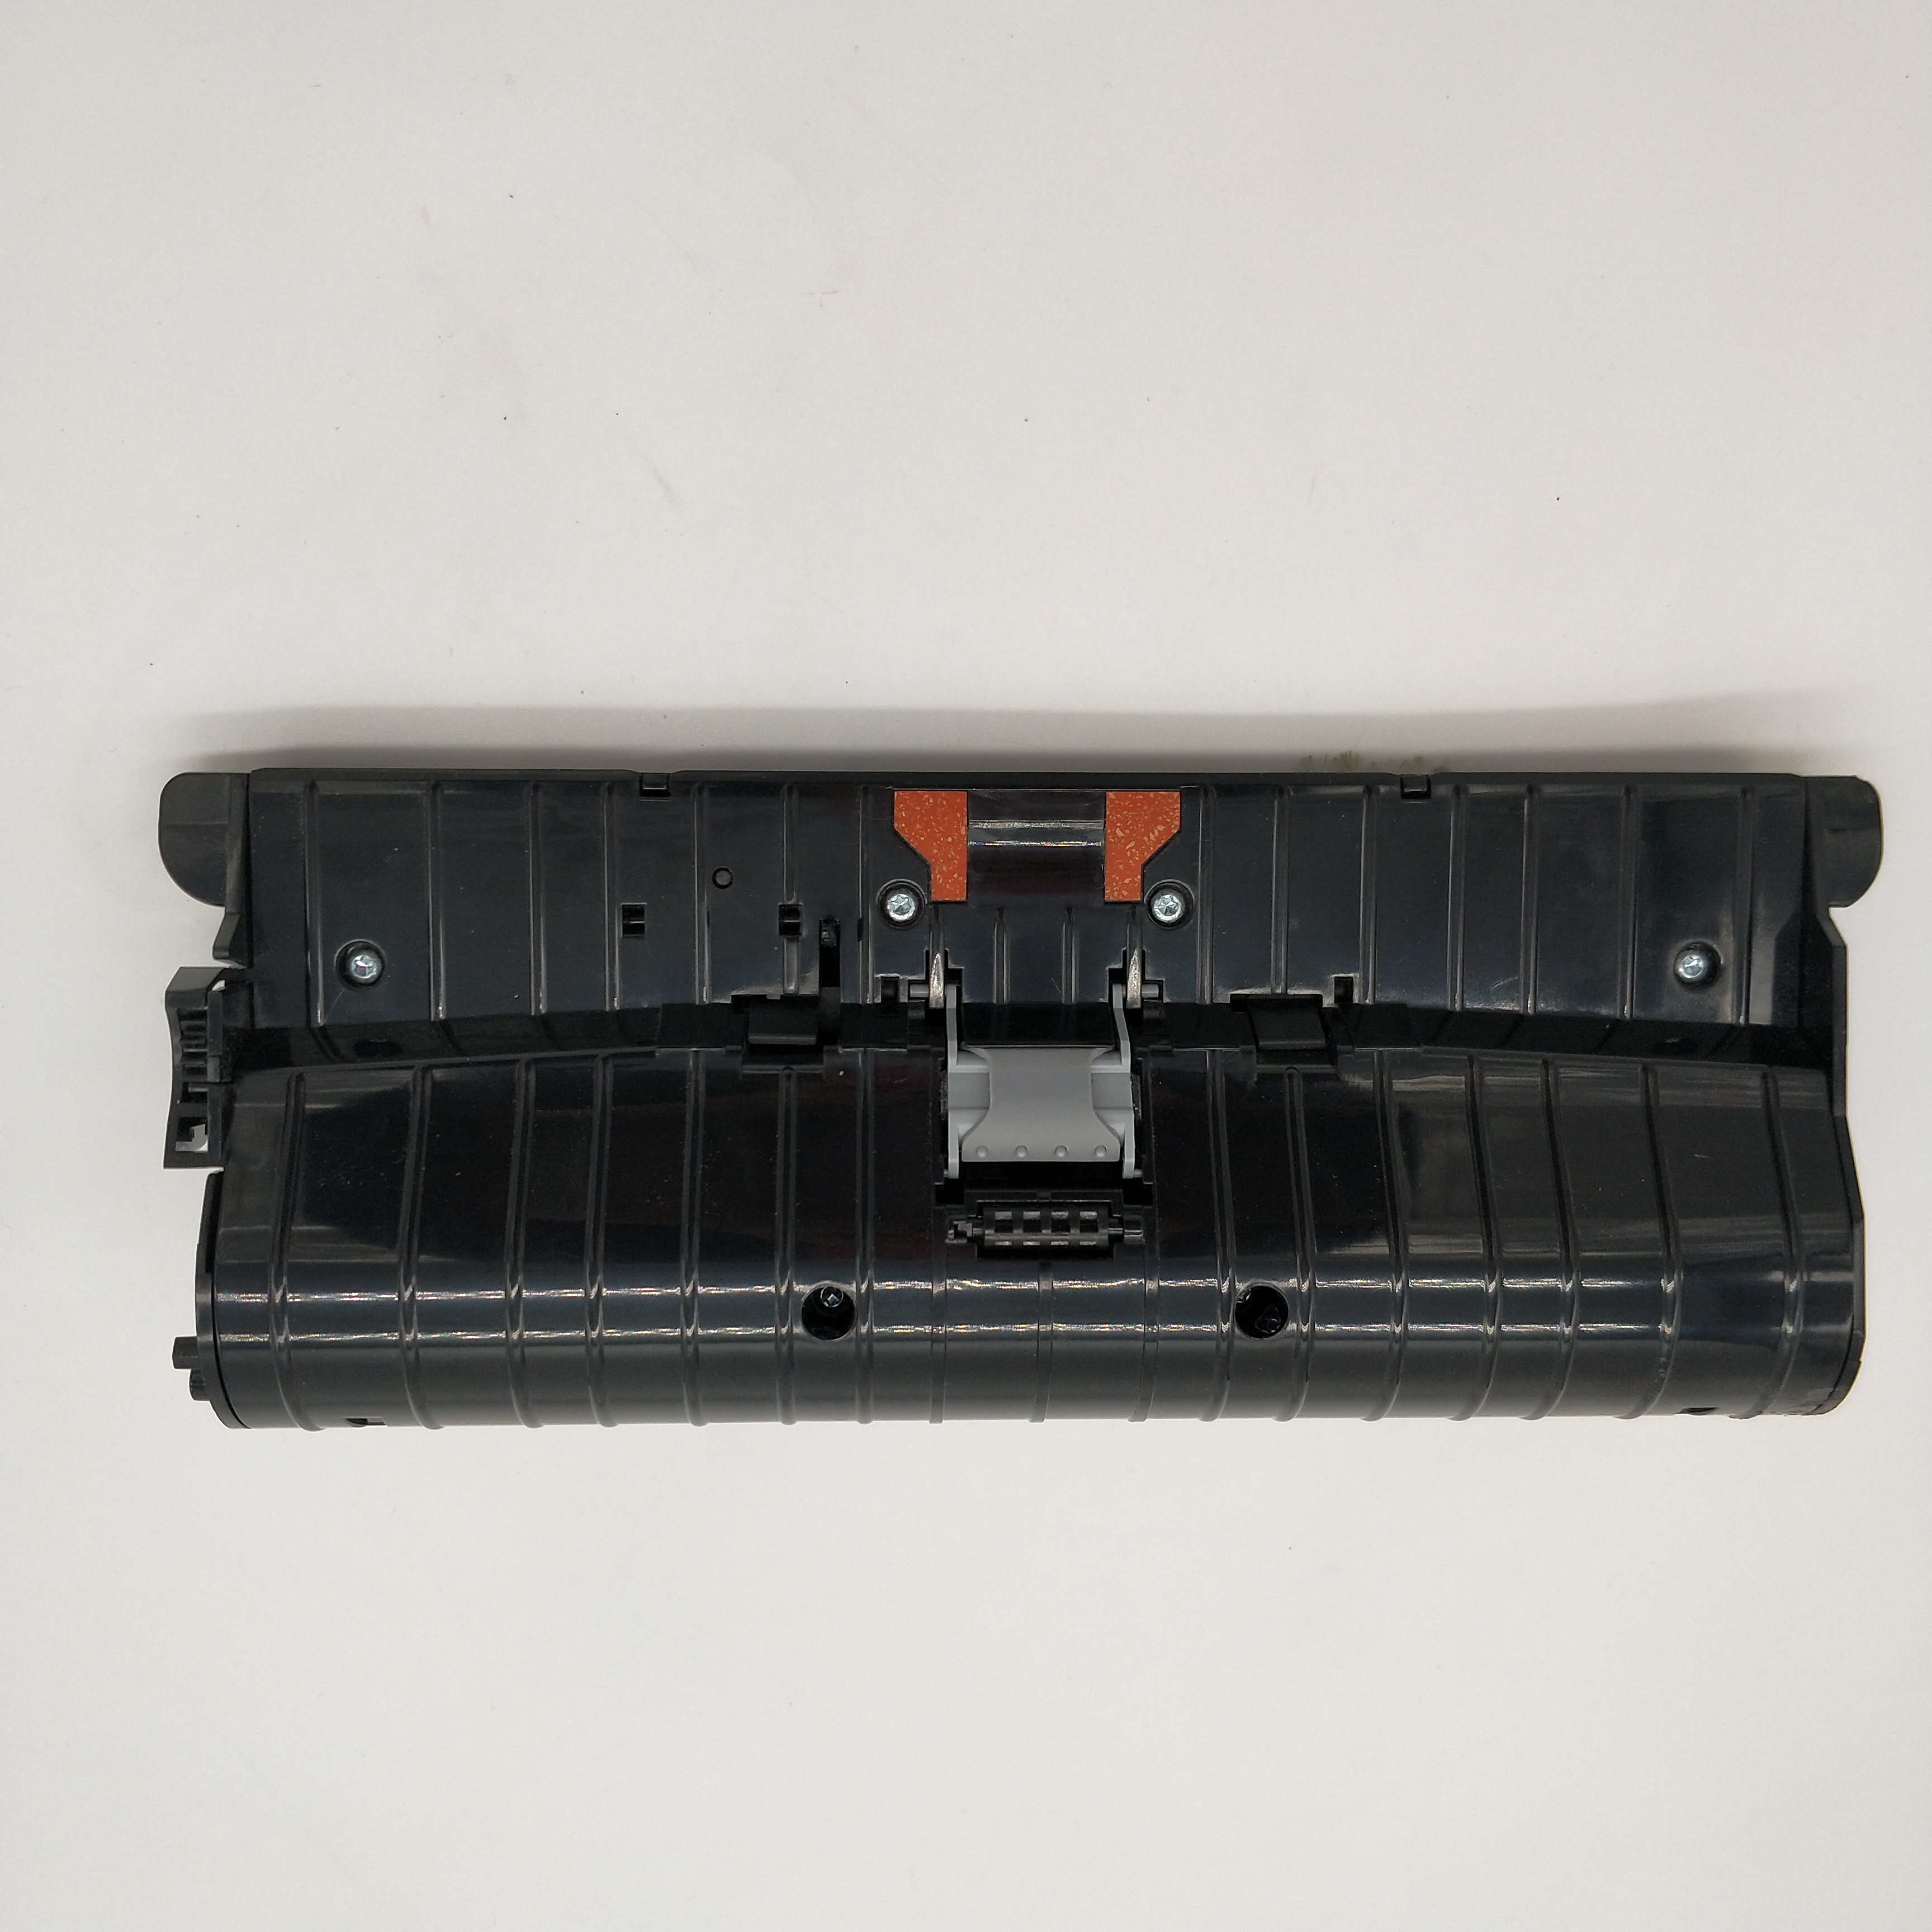 Document feeder ADF core assembly for hp 1213 1216 1536 1536DNF 175 1415 400Document feeder ADF core assembly for hp 1213 1216 1536 1536DNF 175 1415 400